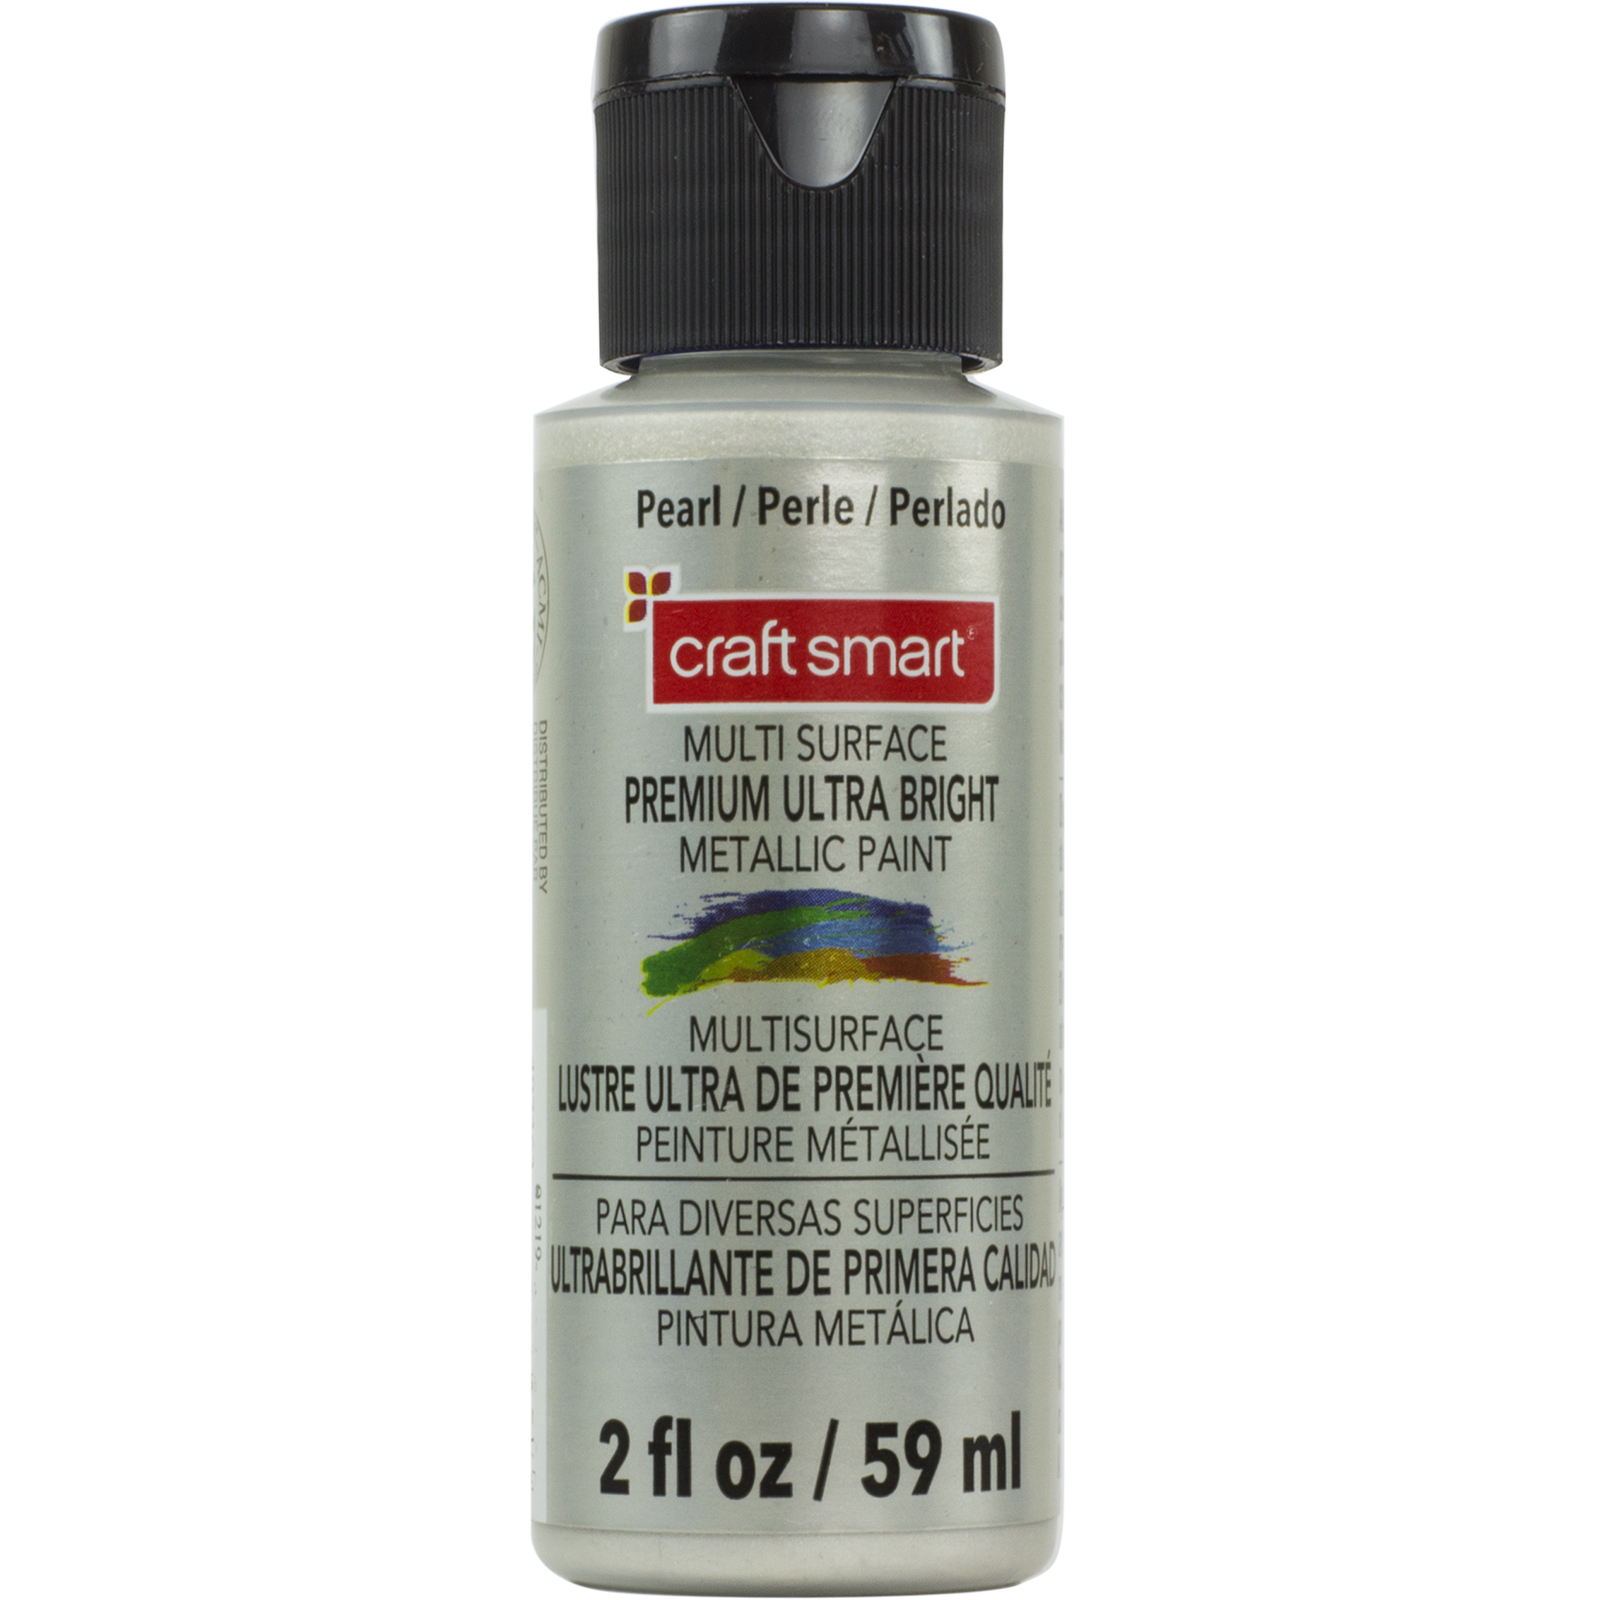 Multi Surface Premium Ultra Bright Metallic Paint By Craft Smart, Pearl